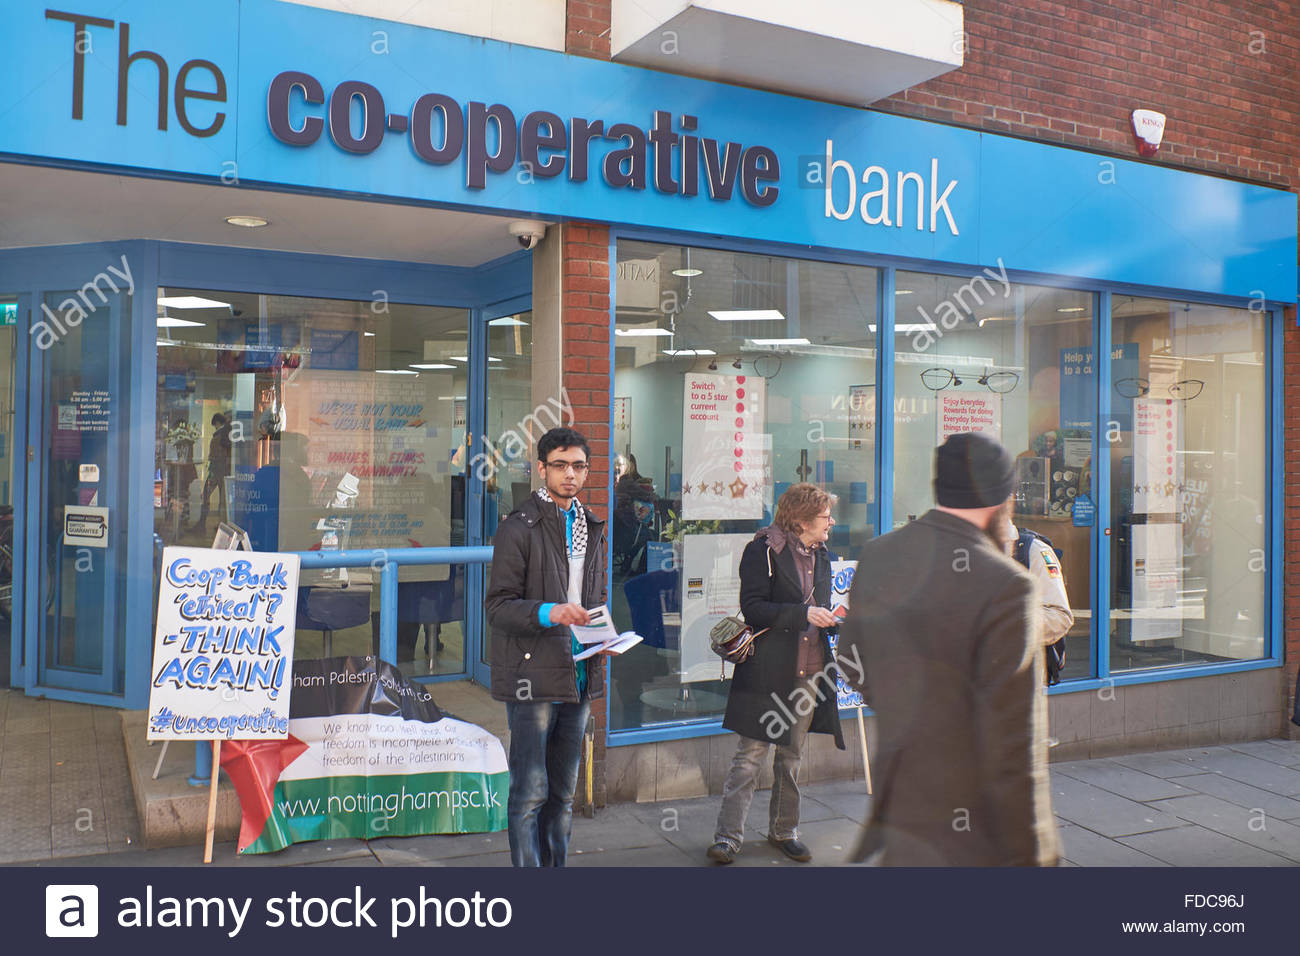 Nottingham, UK. 30th Jan 2016. Protest by Palestinian Solidarity Campaign against Co-op Bank Protest at The Cooperative - Stock Image